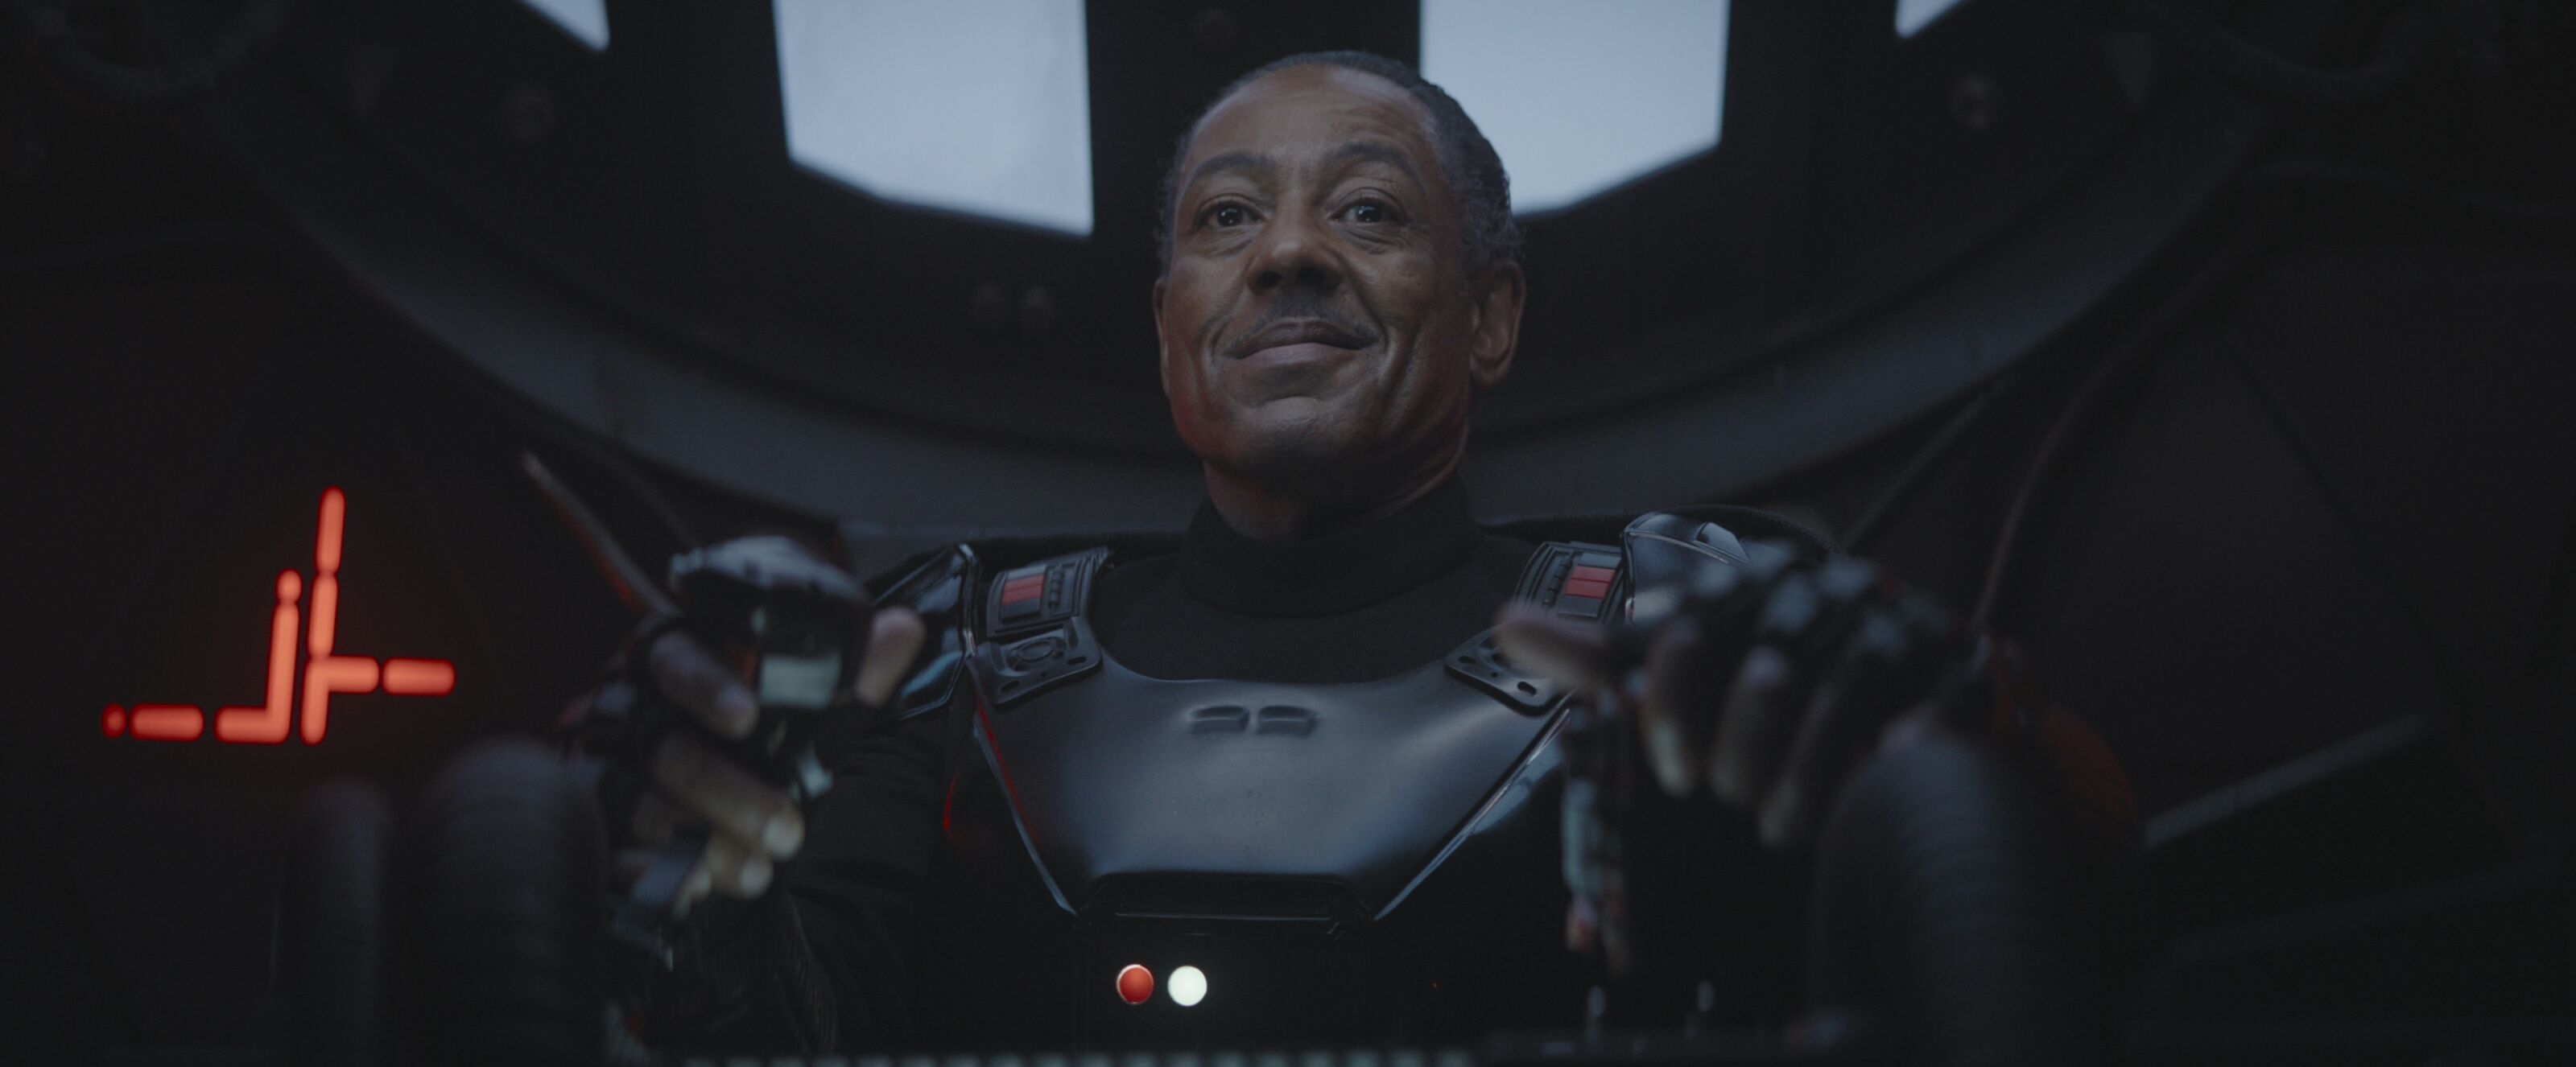 Why is everyone after Baby Yoda? Giancarlo Esposito (Moff Gideon) speaks